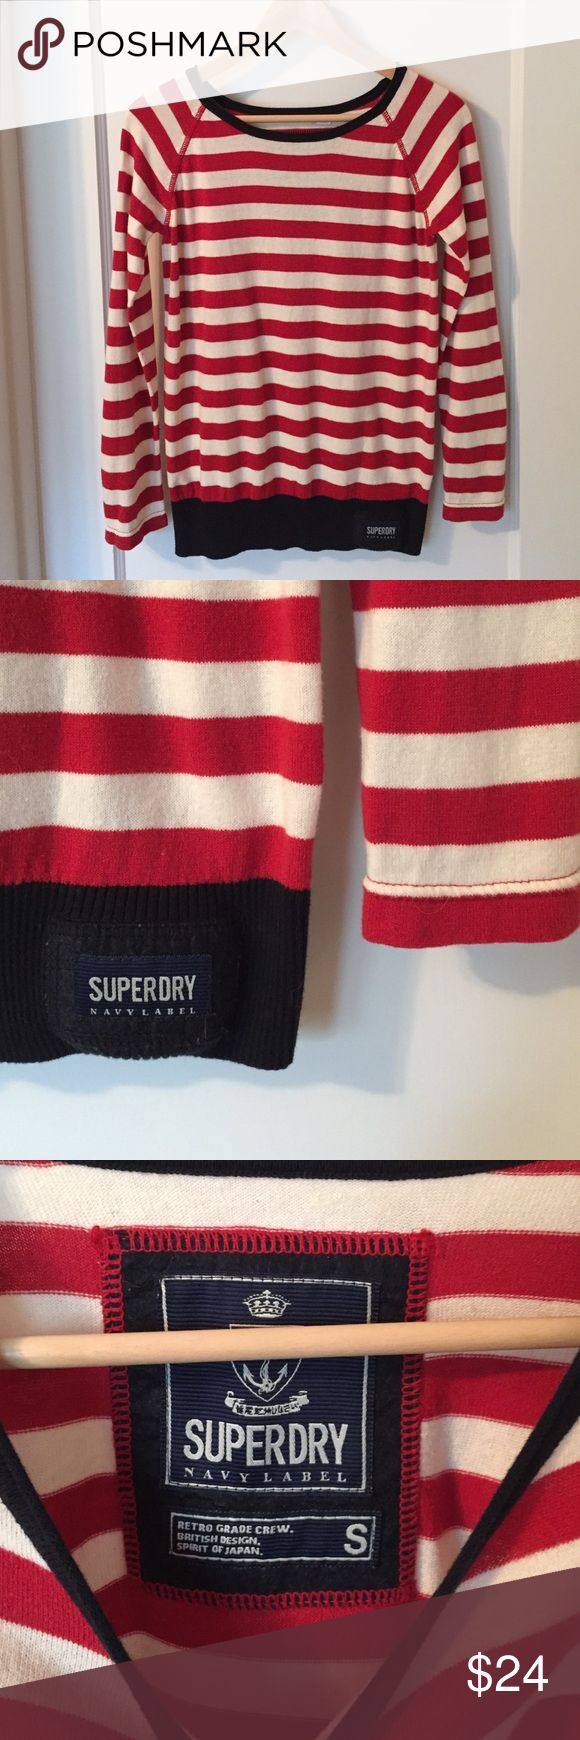 Superdry Striped Cotton Top Red and white striped top by Superdry. Super soft to the touch. 100% cotton. Superdry Tops Tees - Long Sleeve